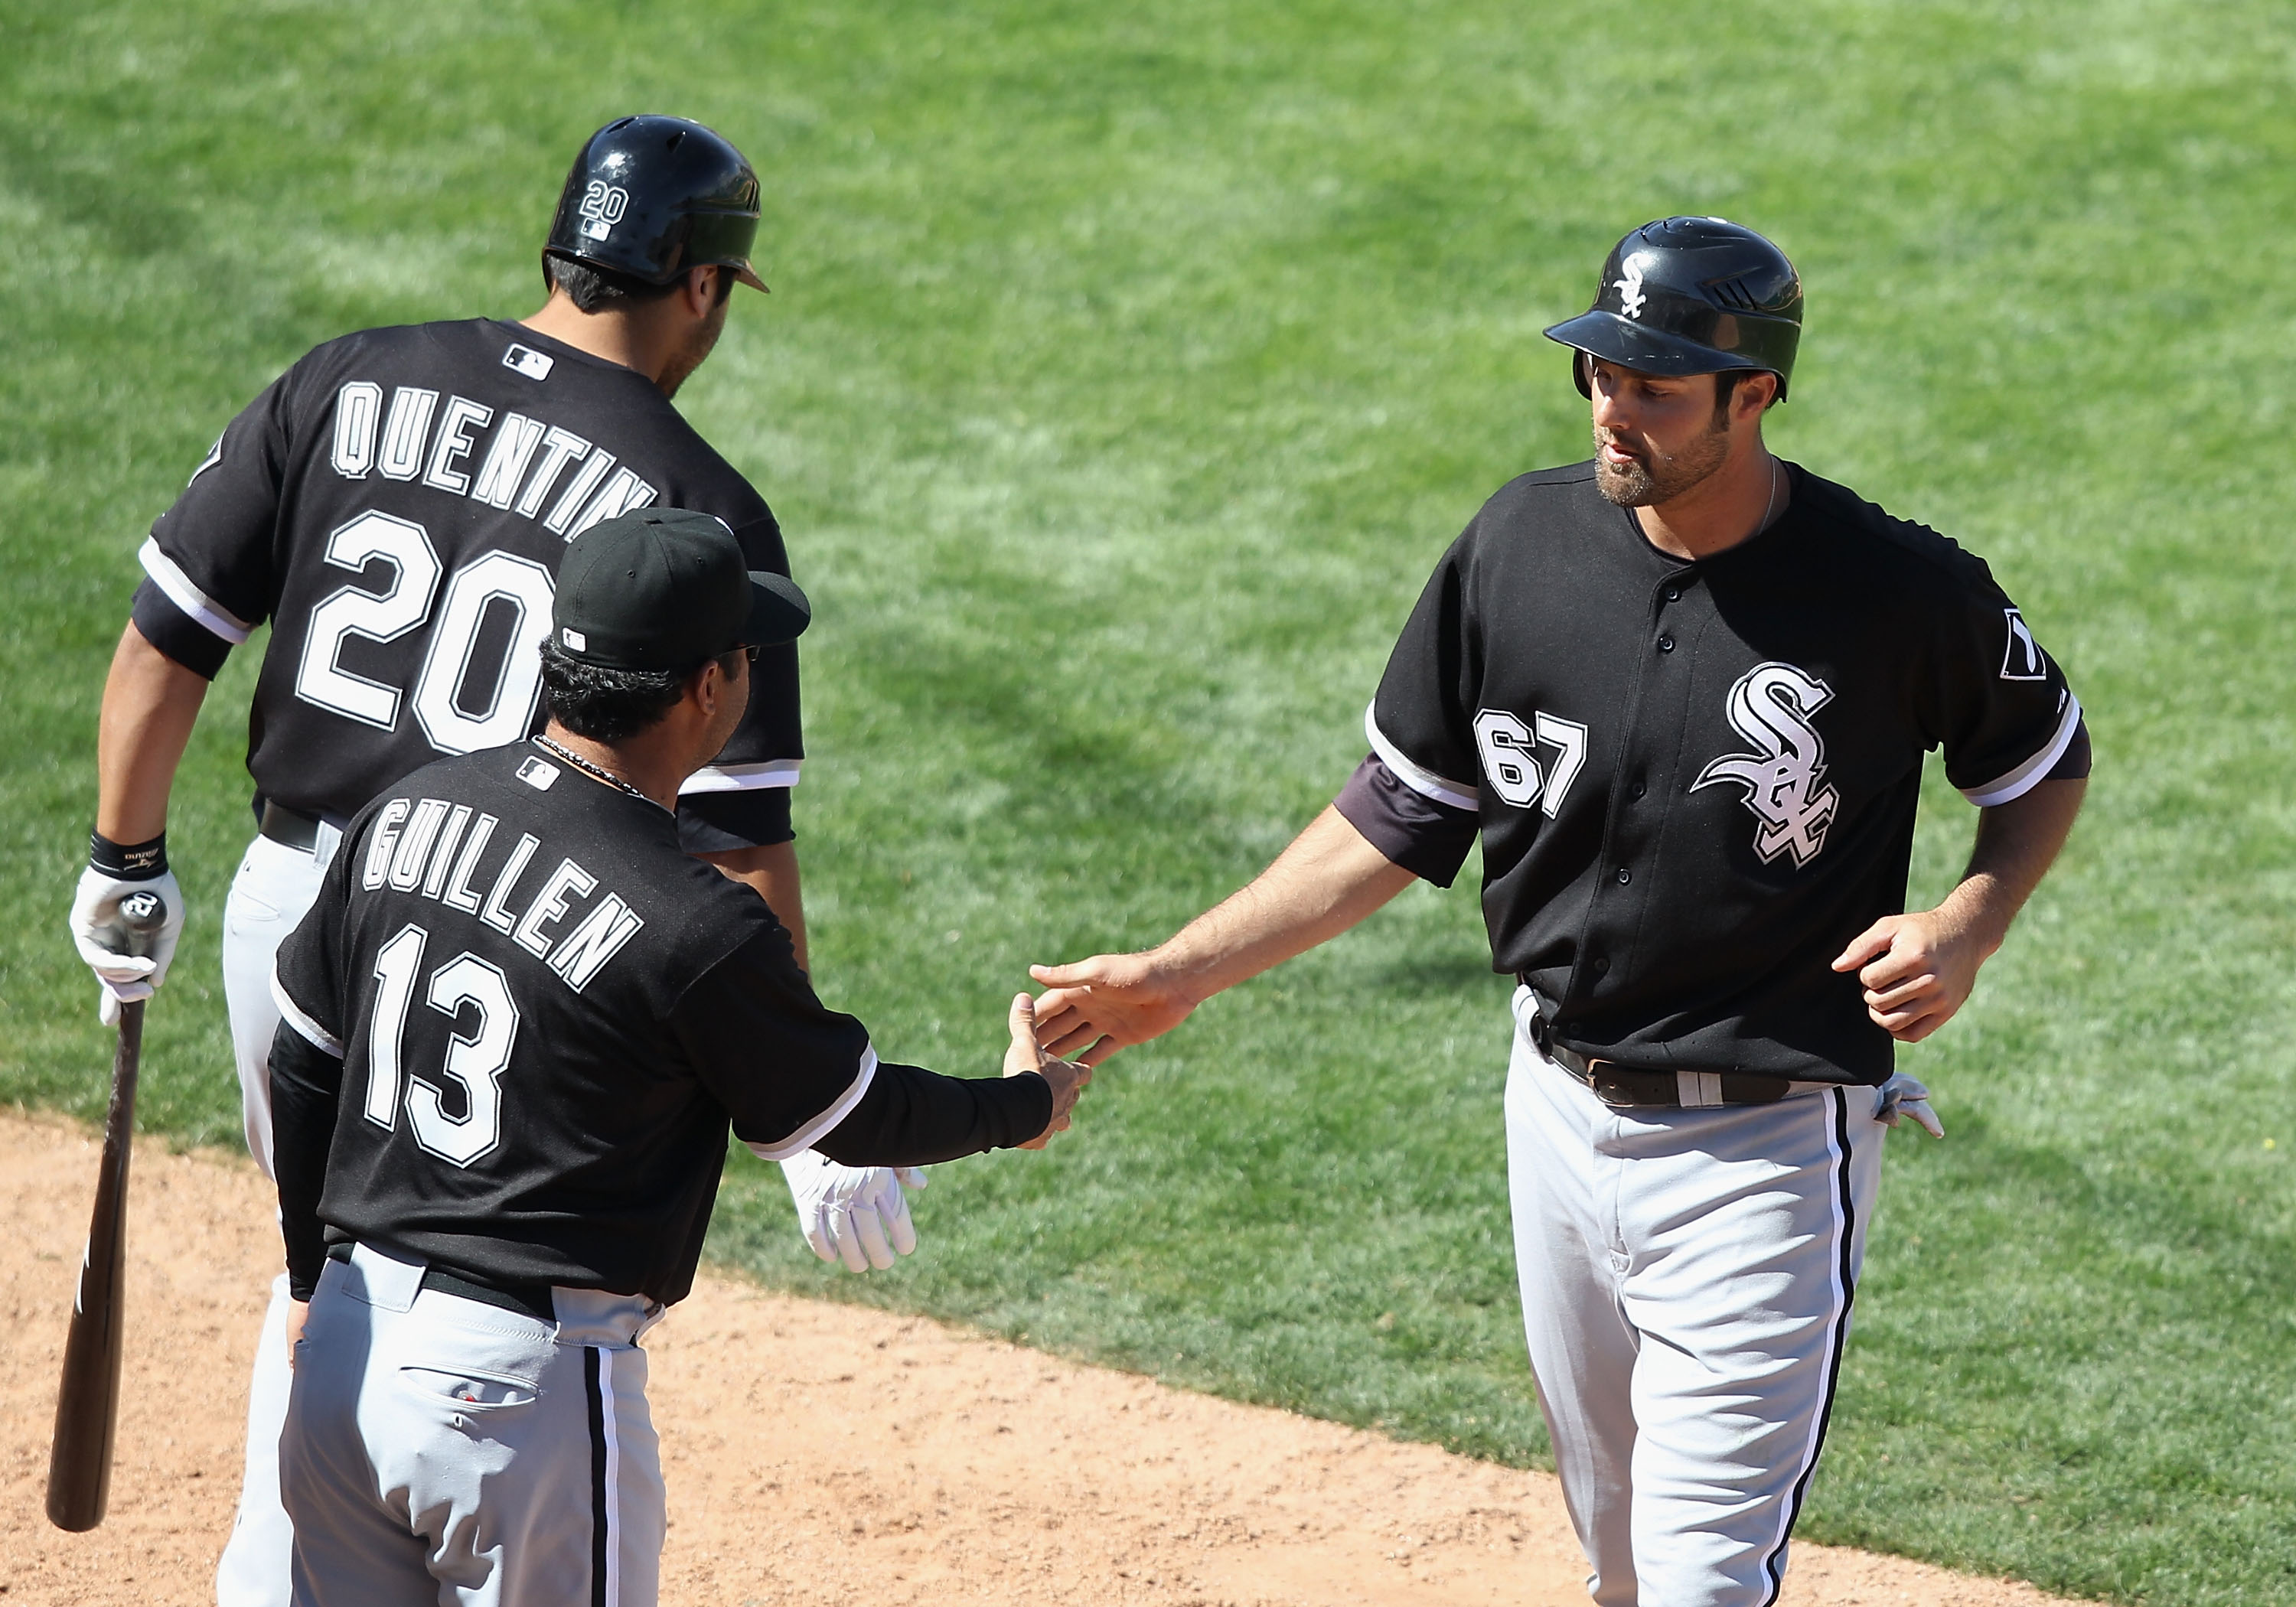 TUCSON, AZ - MARCH 07:   Jordan Danks #67 of the Chicago White Sox high fives manager Ozzie Guillen after Danks scored a run against the Arizona Diamondbacks during the fifth inning of the spring training game at Kino Veterans Memorial Stadium on March 7,